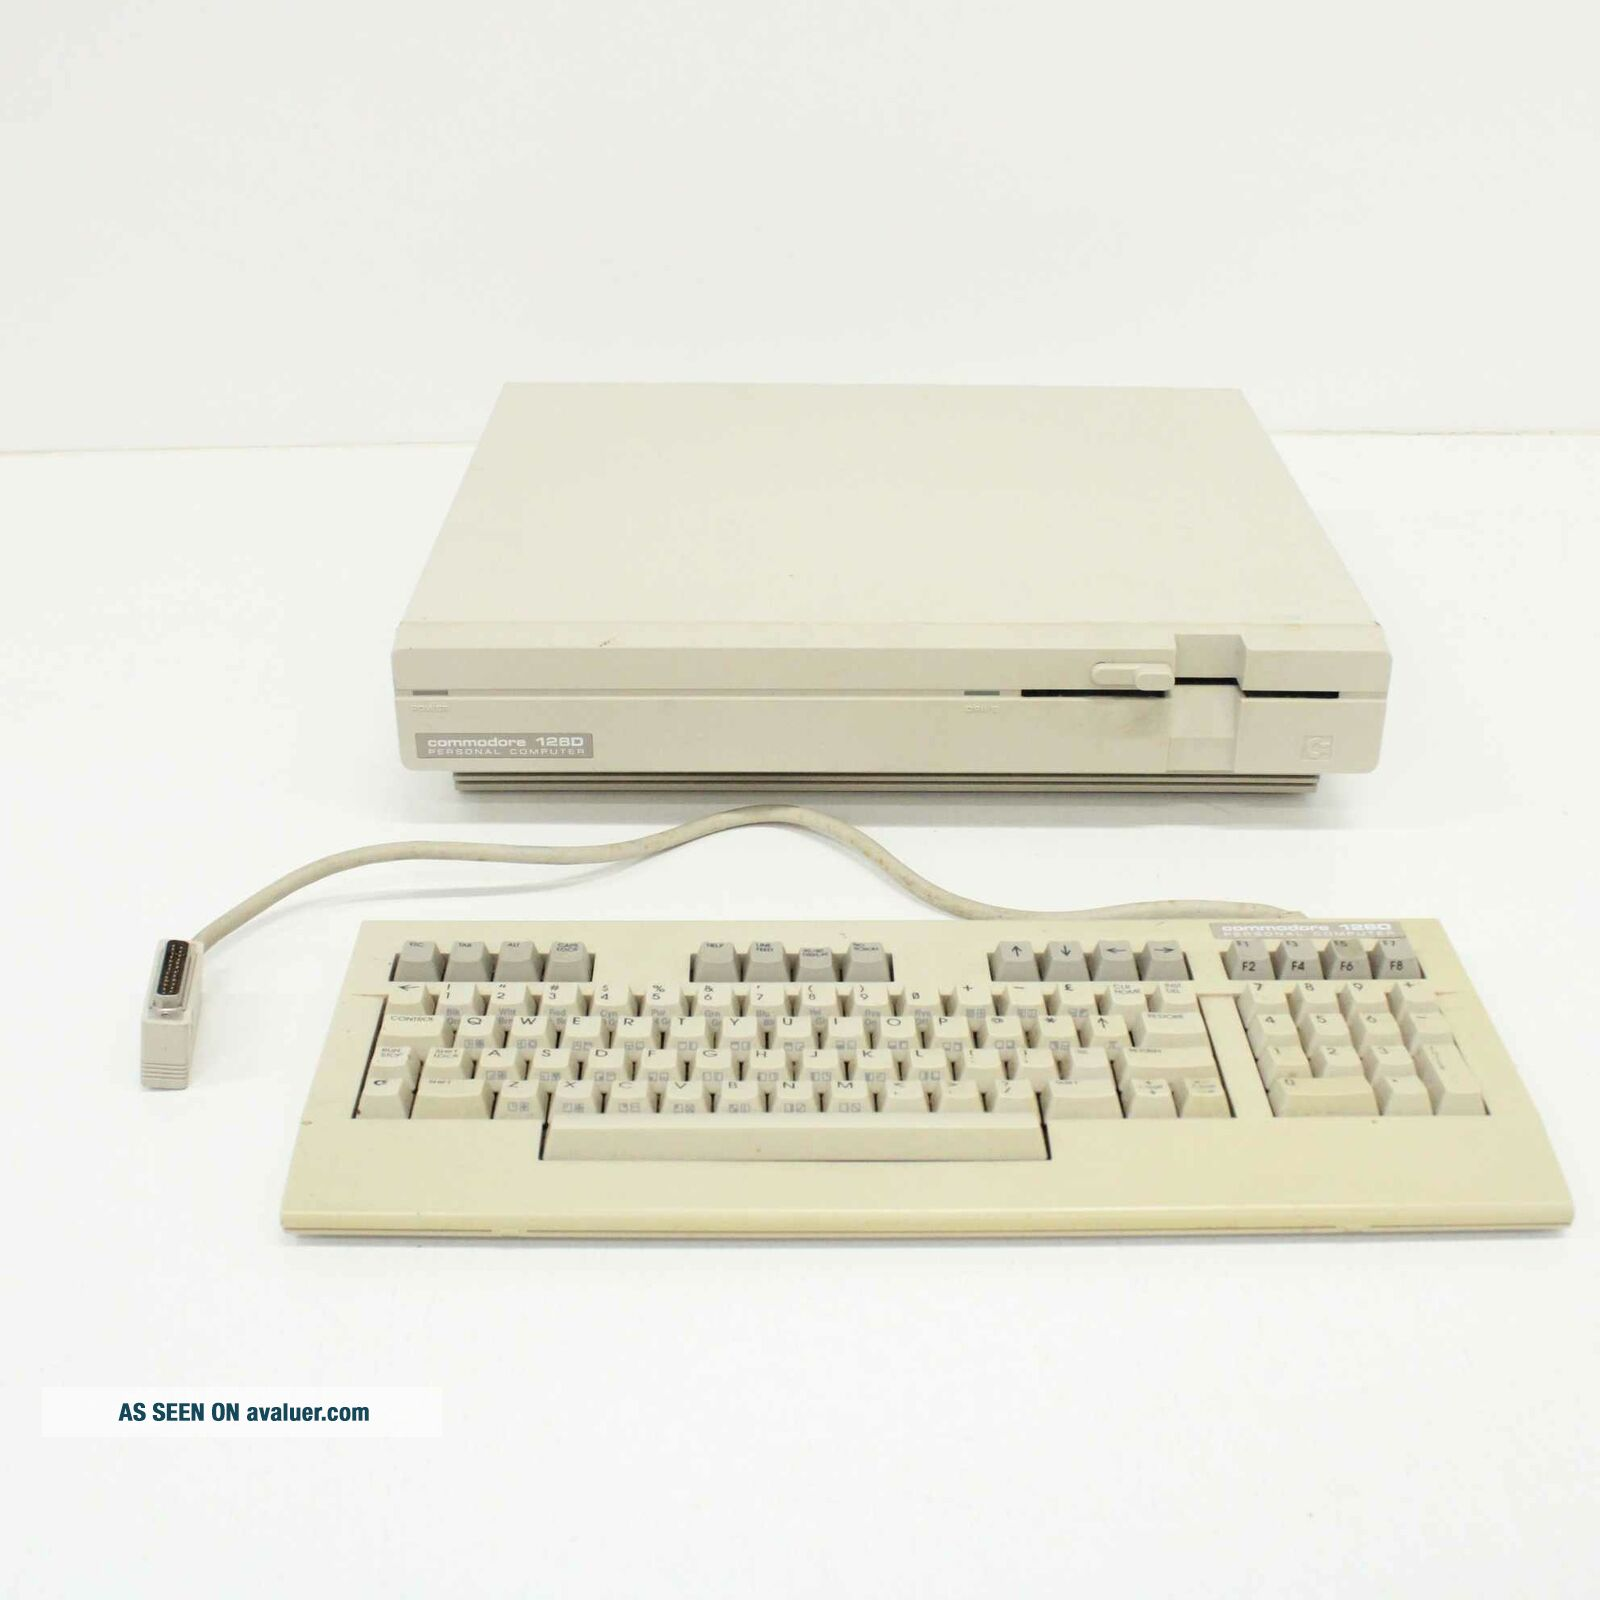 Vintage Commodore 128D Personal Computer with 128D Keyboard 452